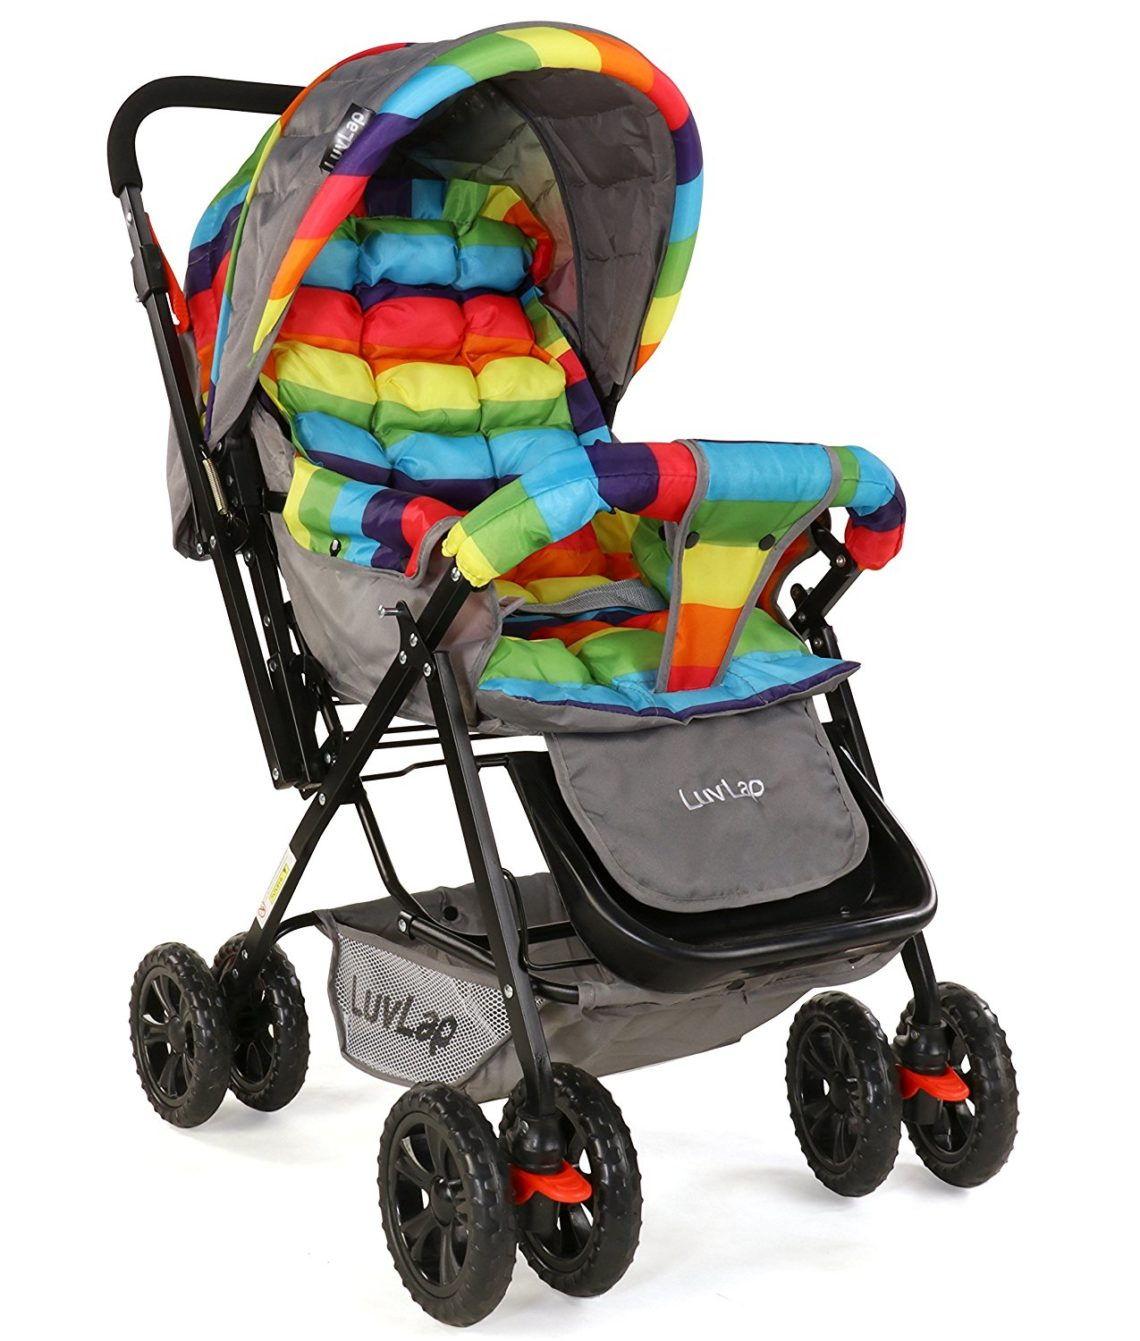 Newborn Baby Buggy Reviews Luvlap Baby Stroller Review Top 5 Models Are They Good